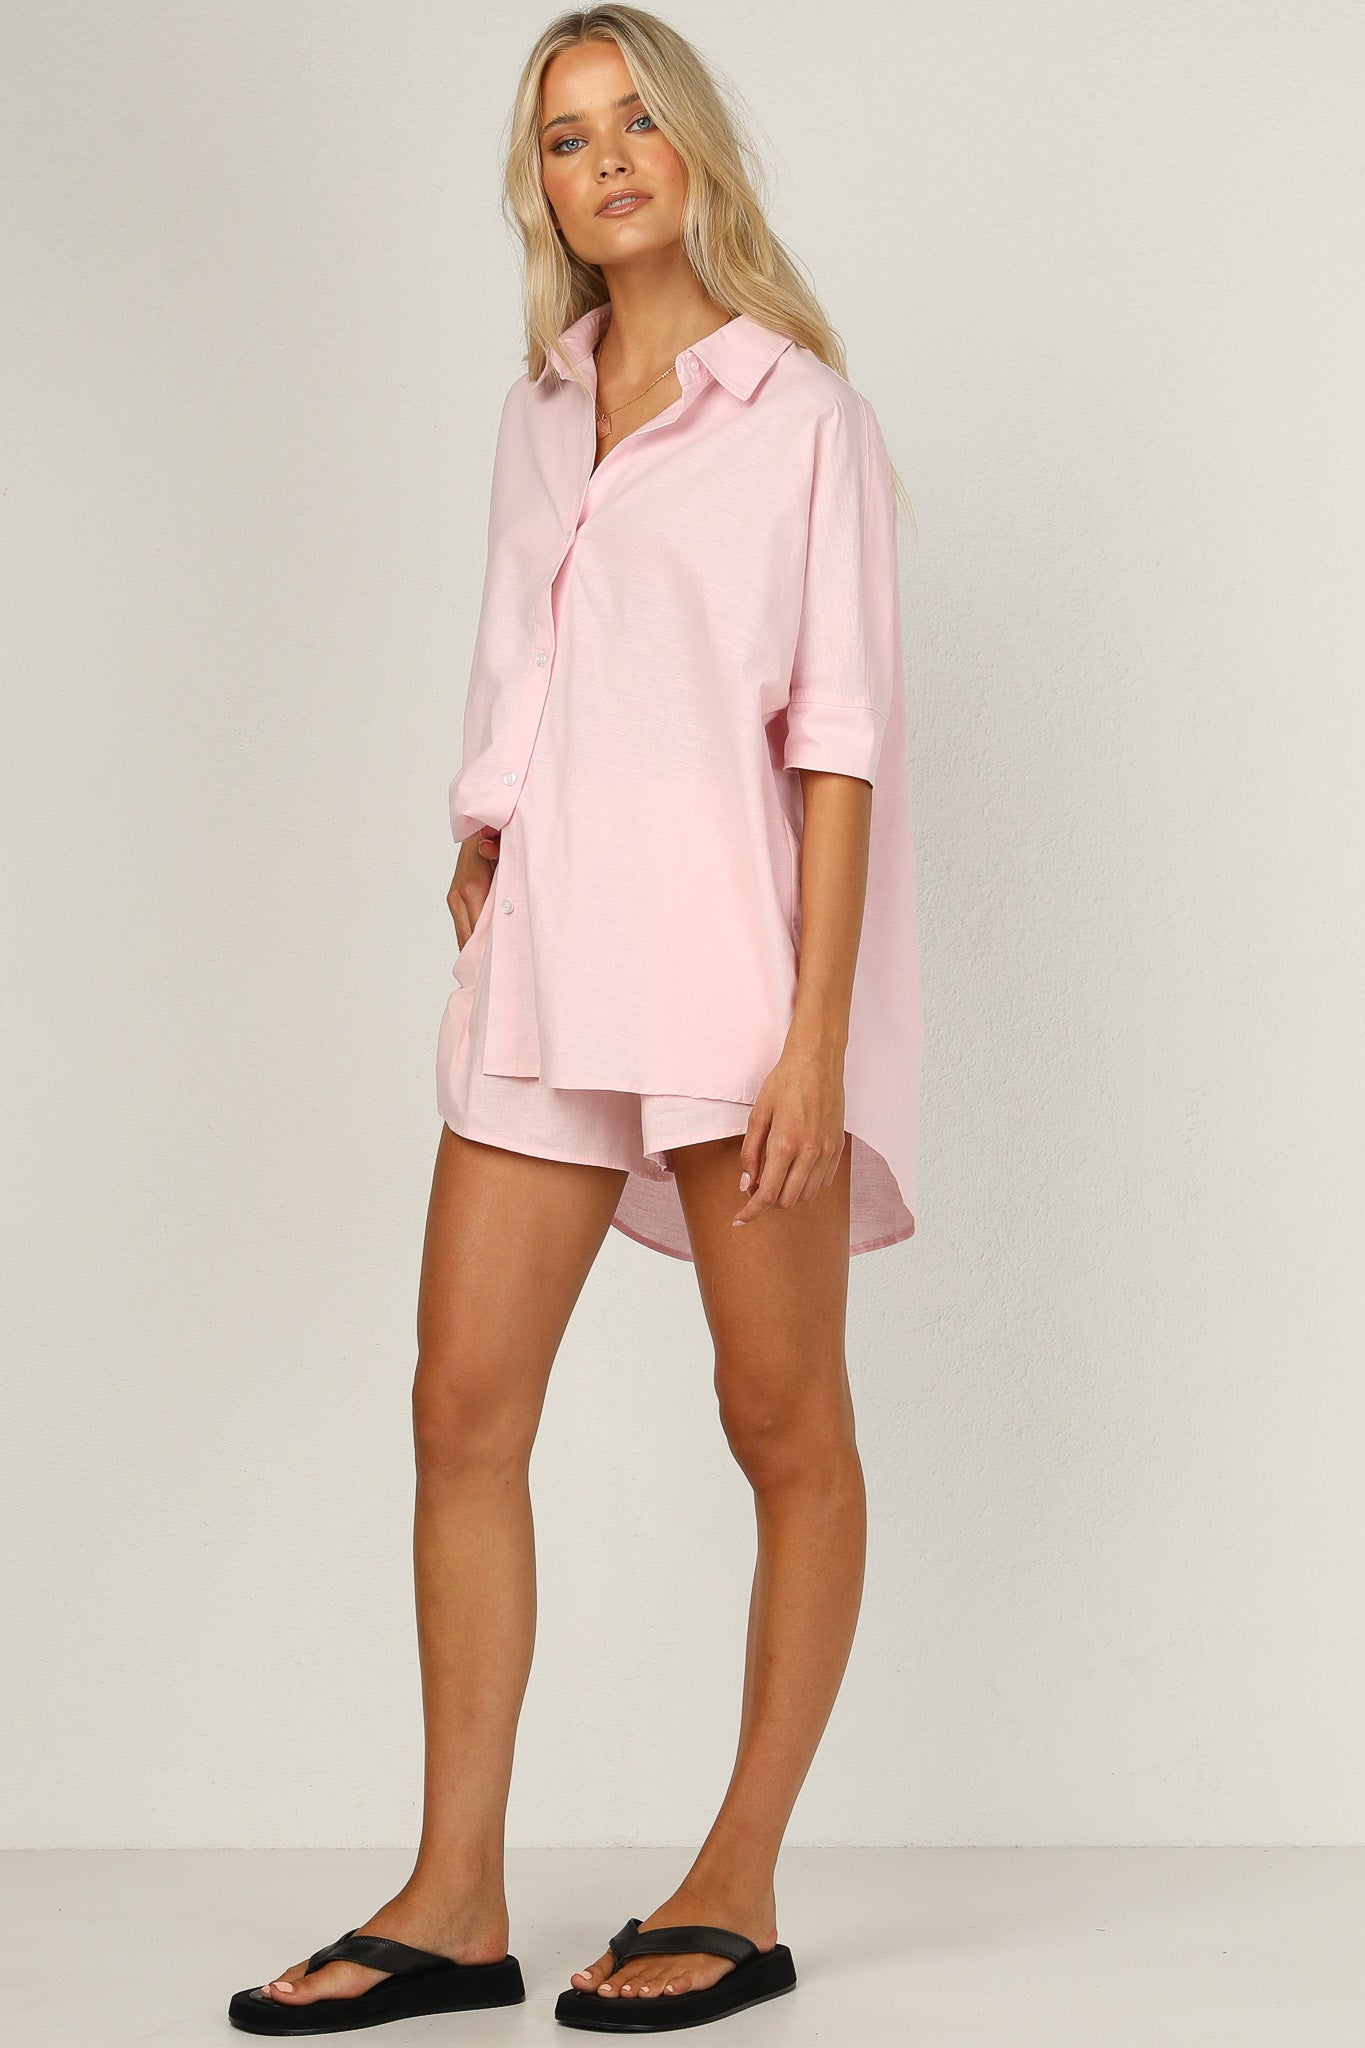 Bella Shirt (Pink)